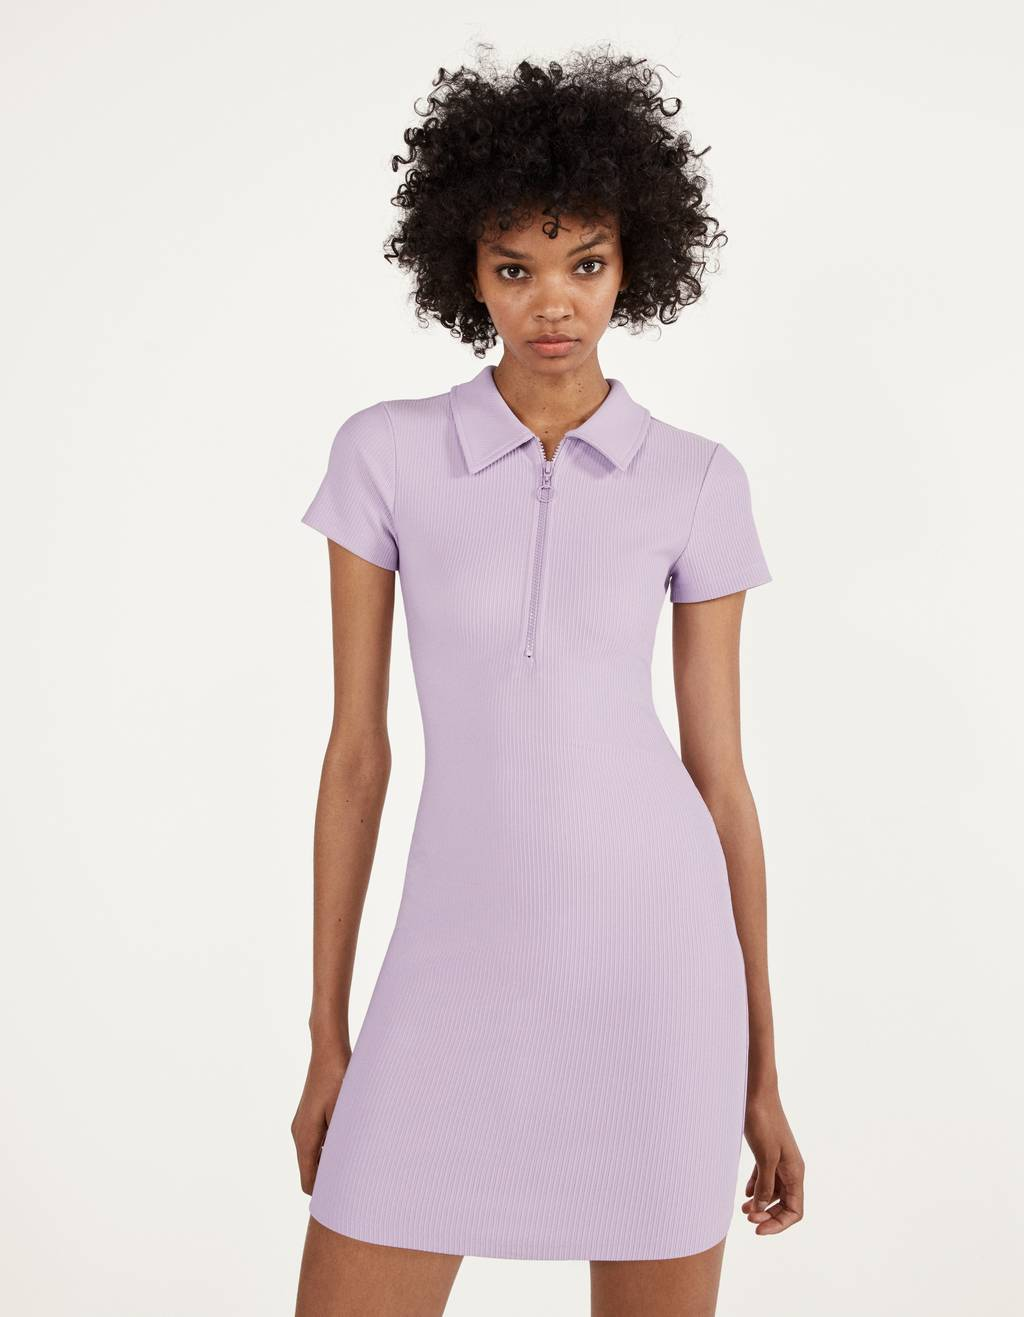 Short polo-style dress